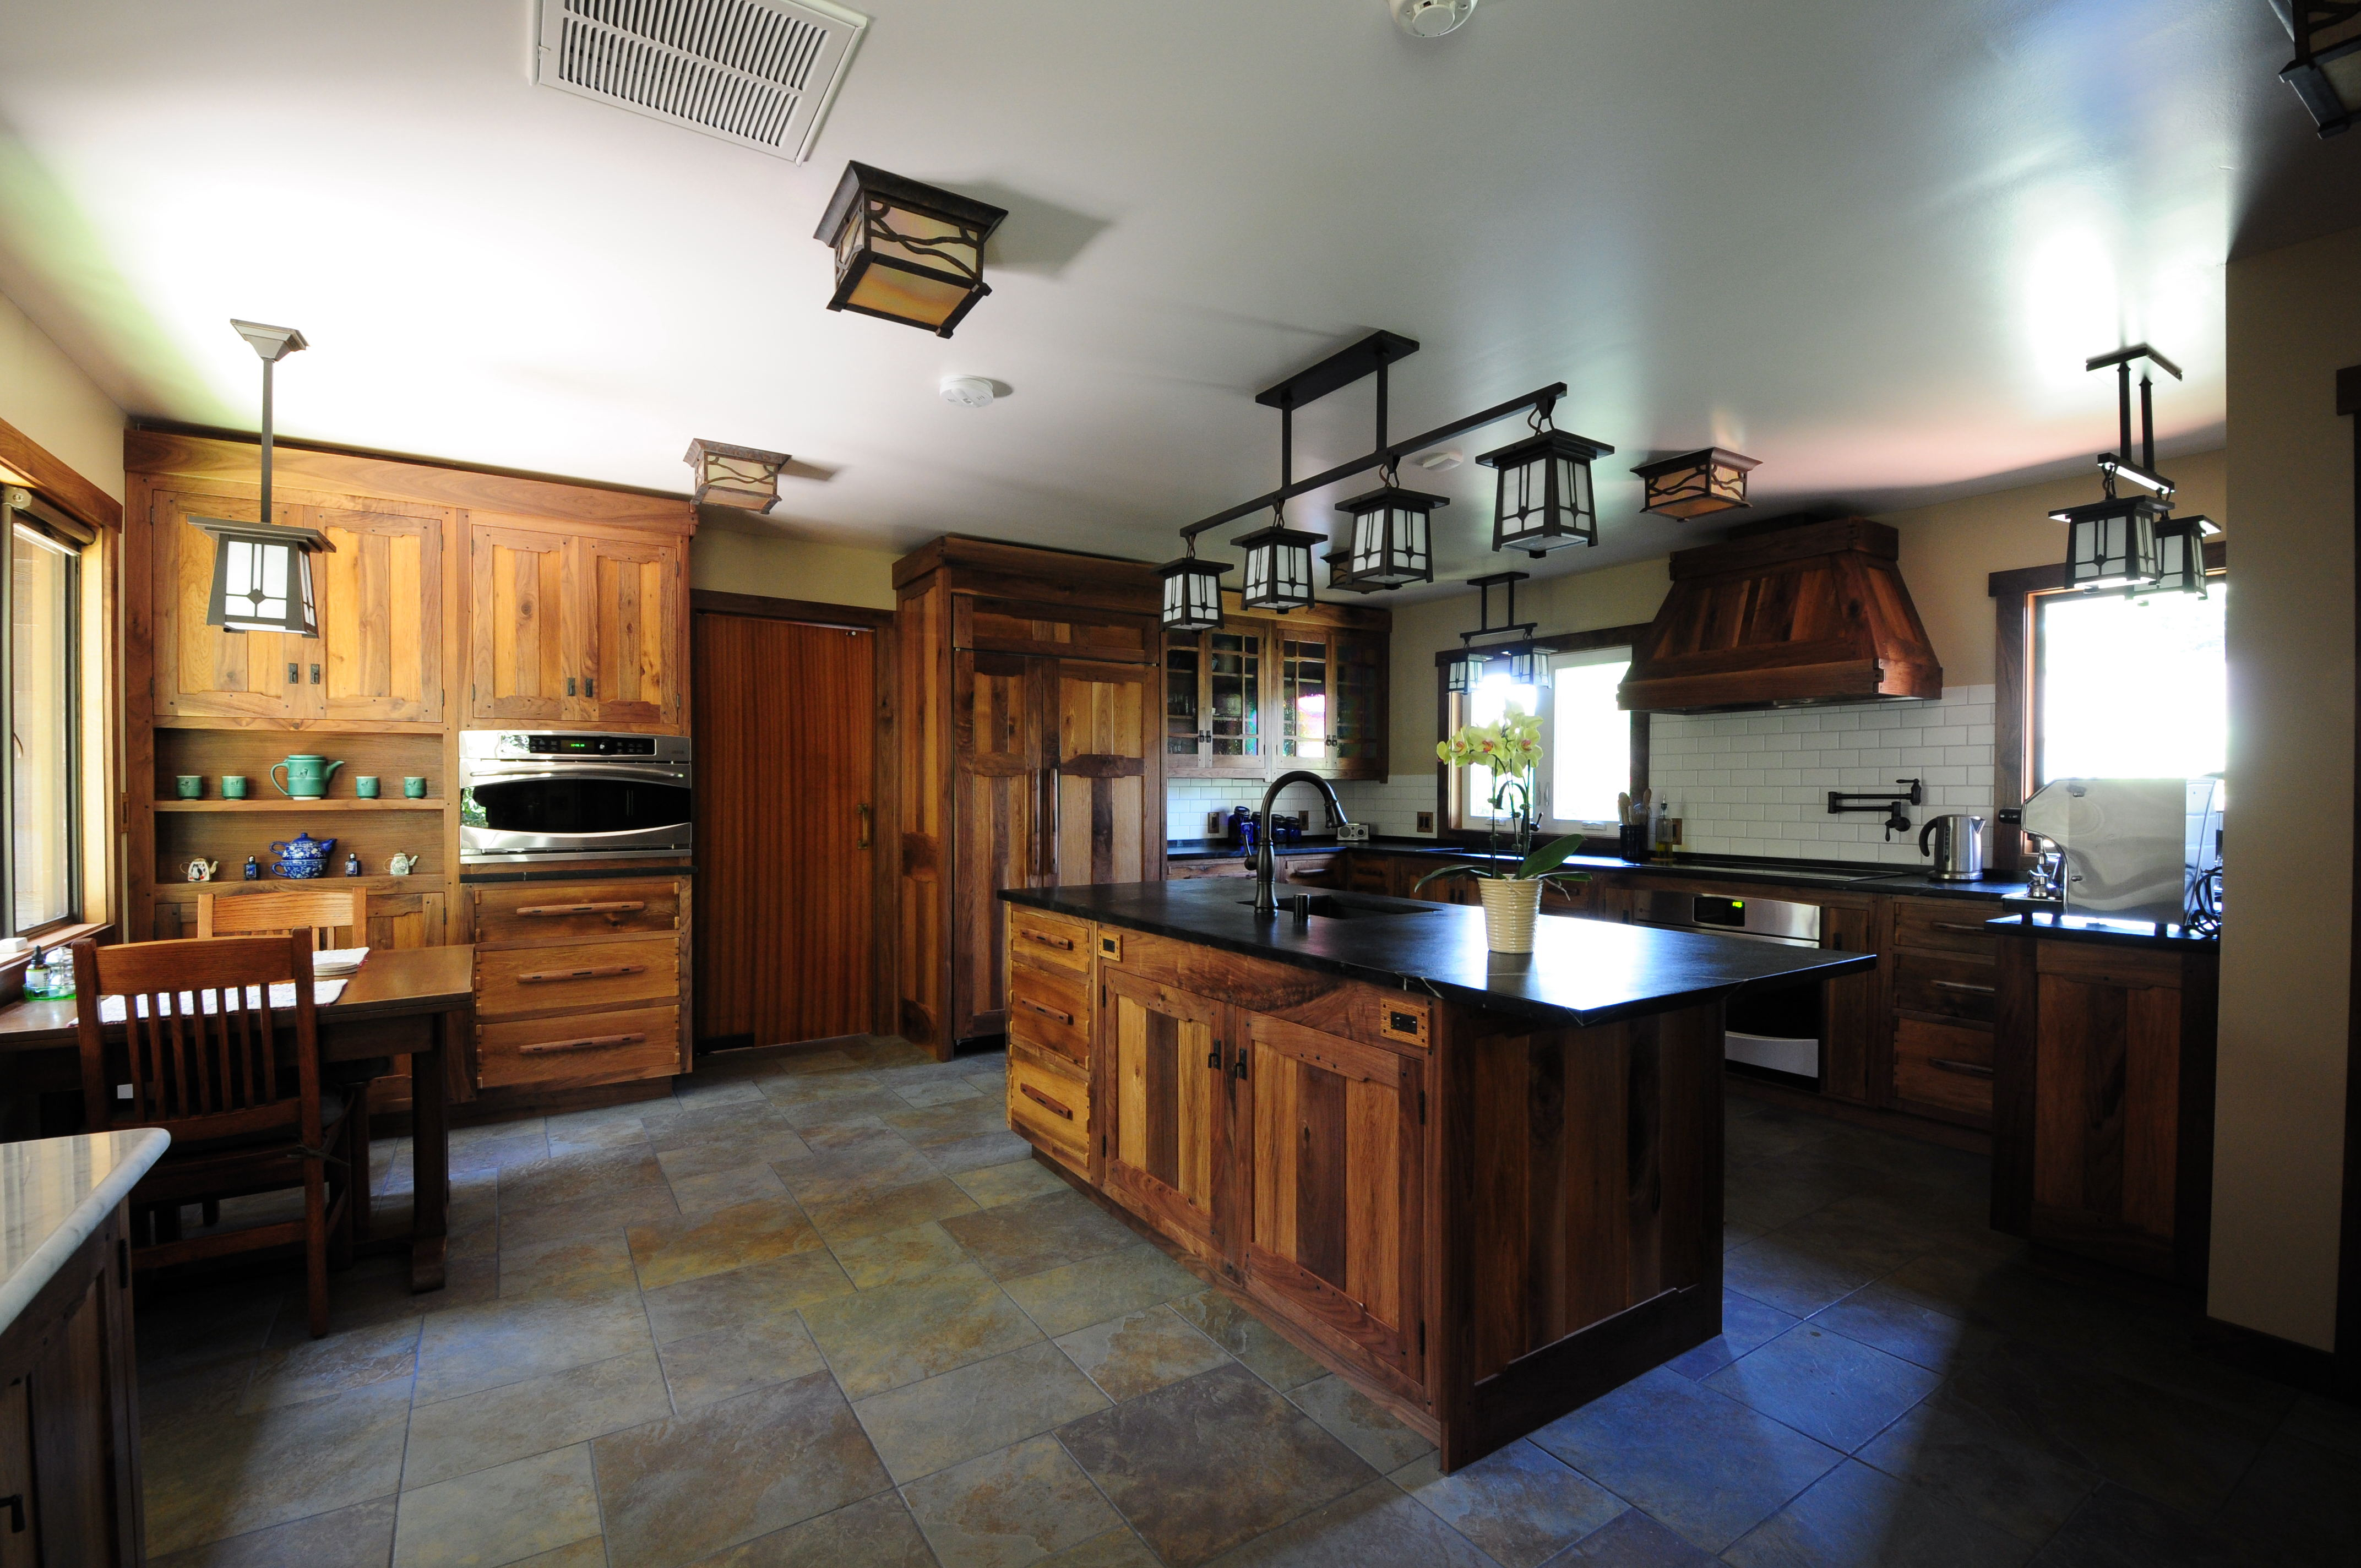 Picturesque Black Marble Kitchen S Of Wooden With And Cool Pendant